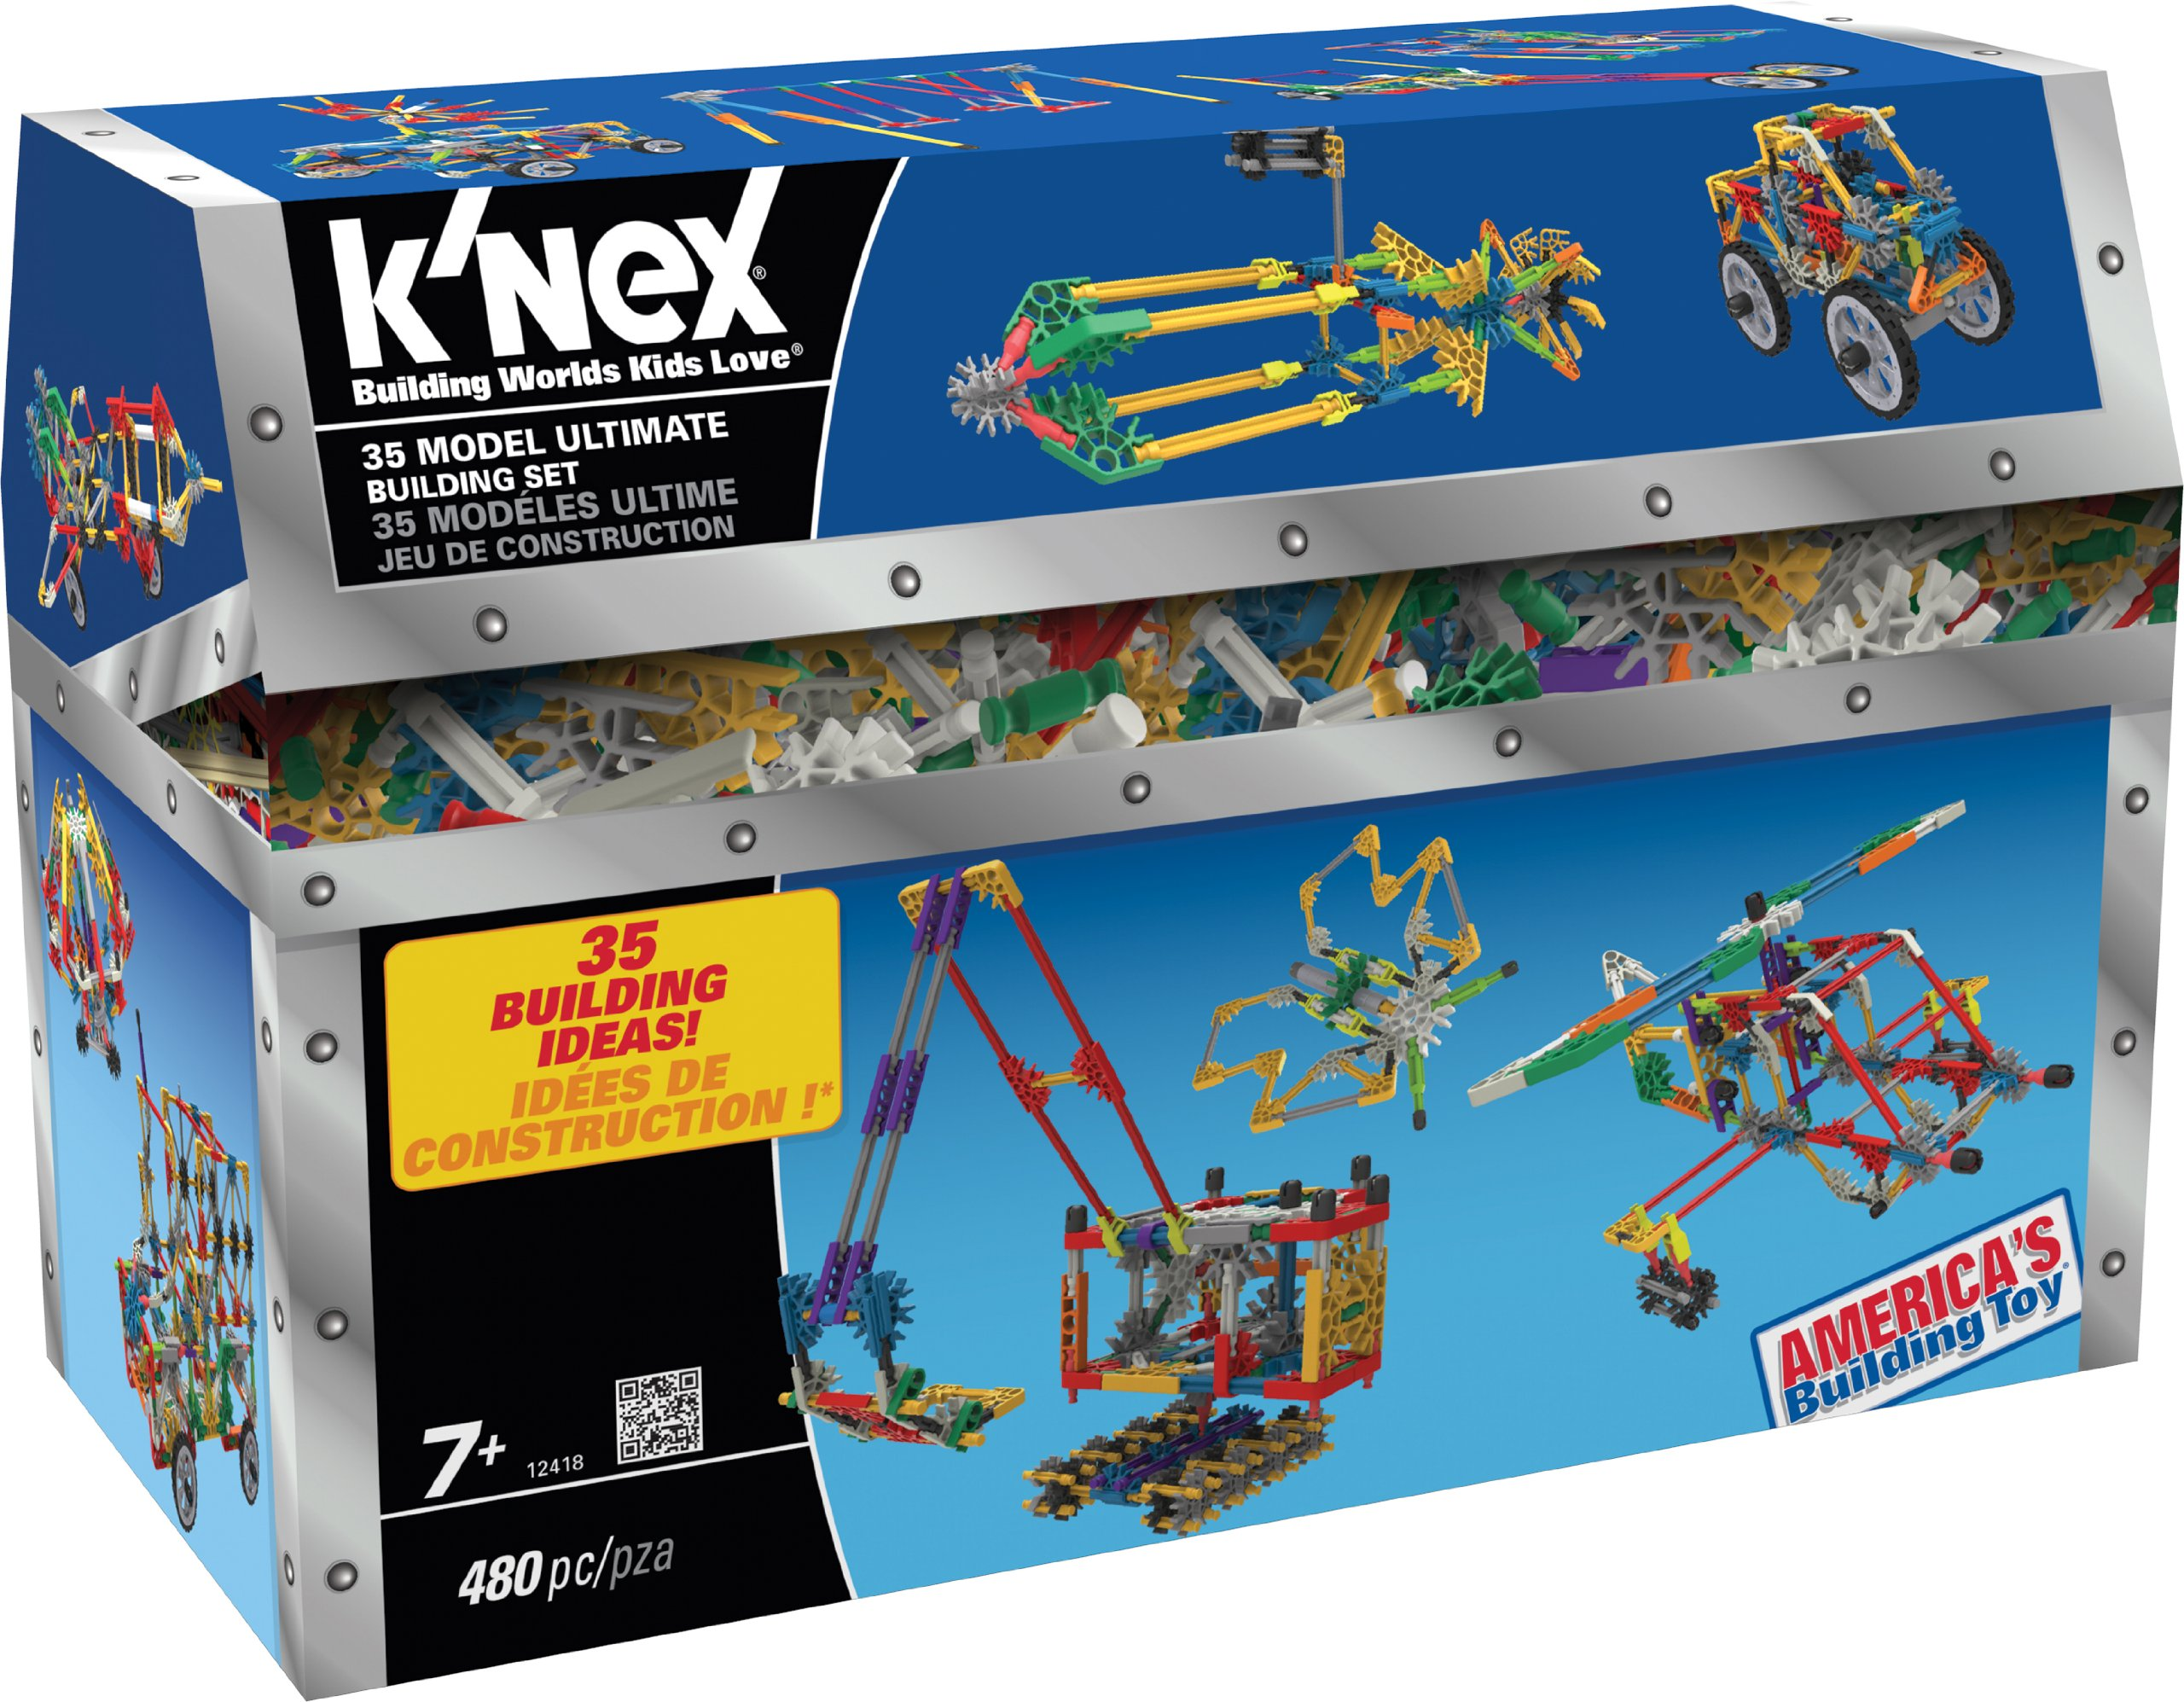 Building Toys For Teenagers : K nex model ultimate building set kit assembly toy for